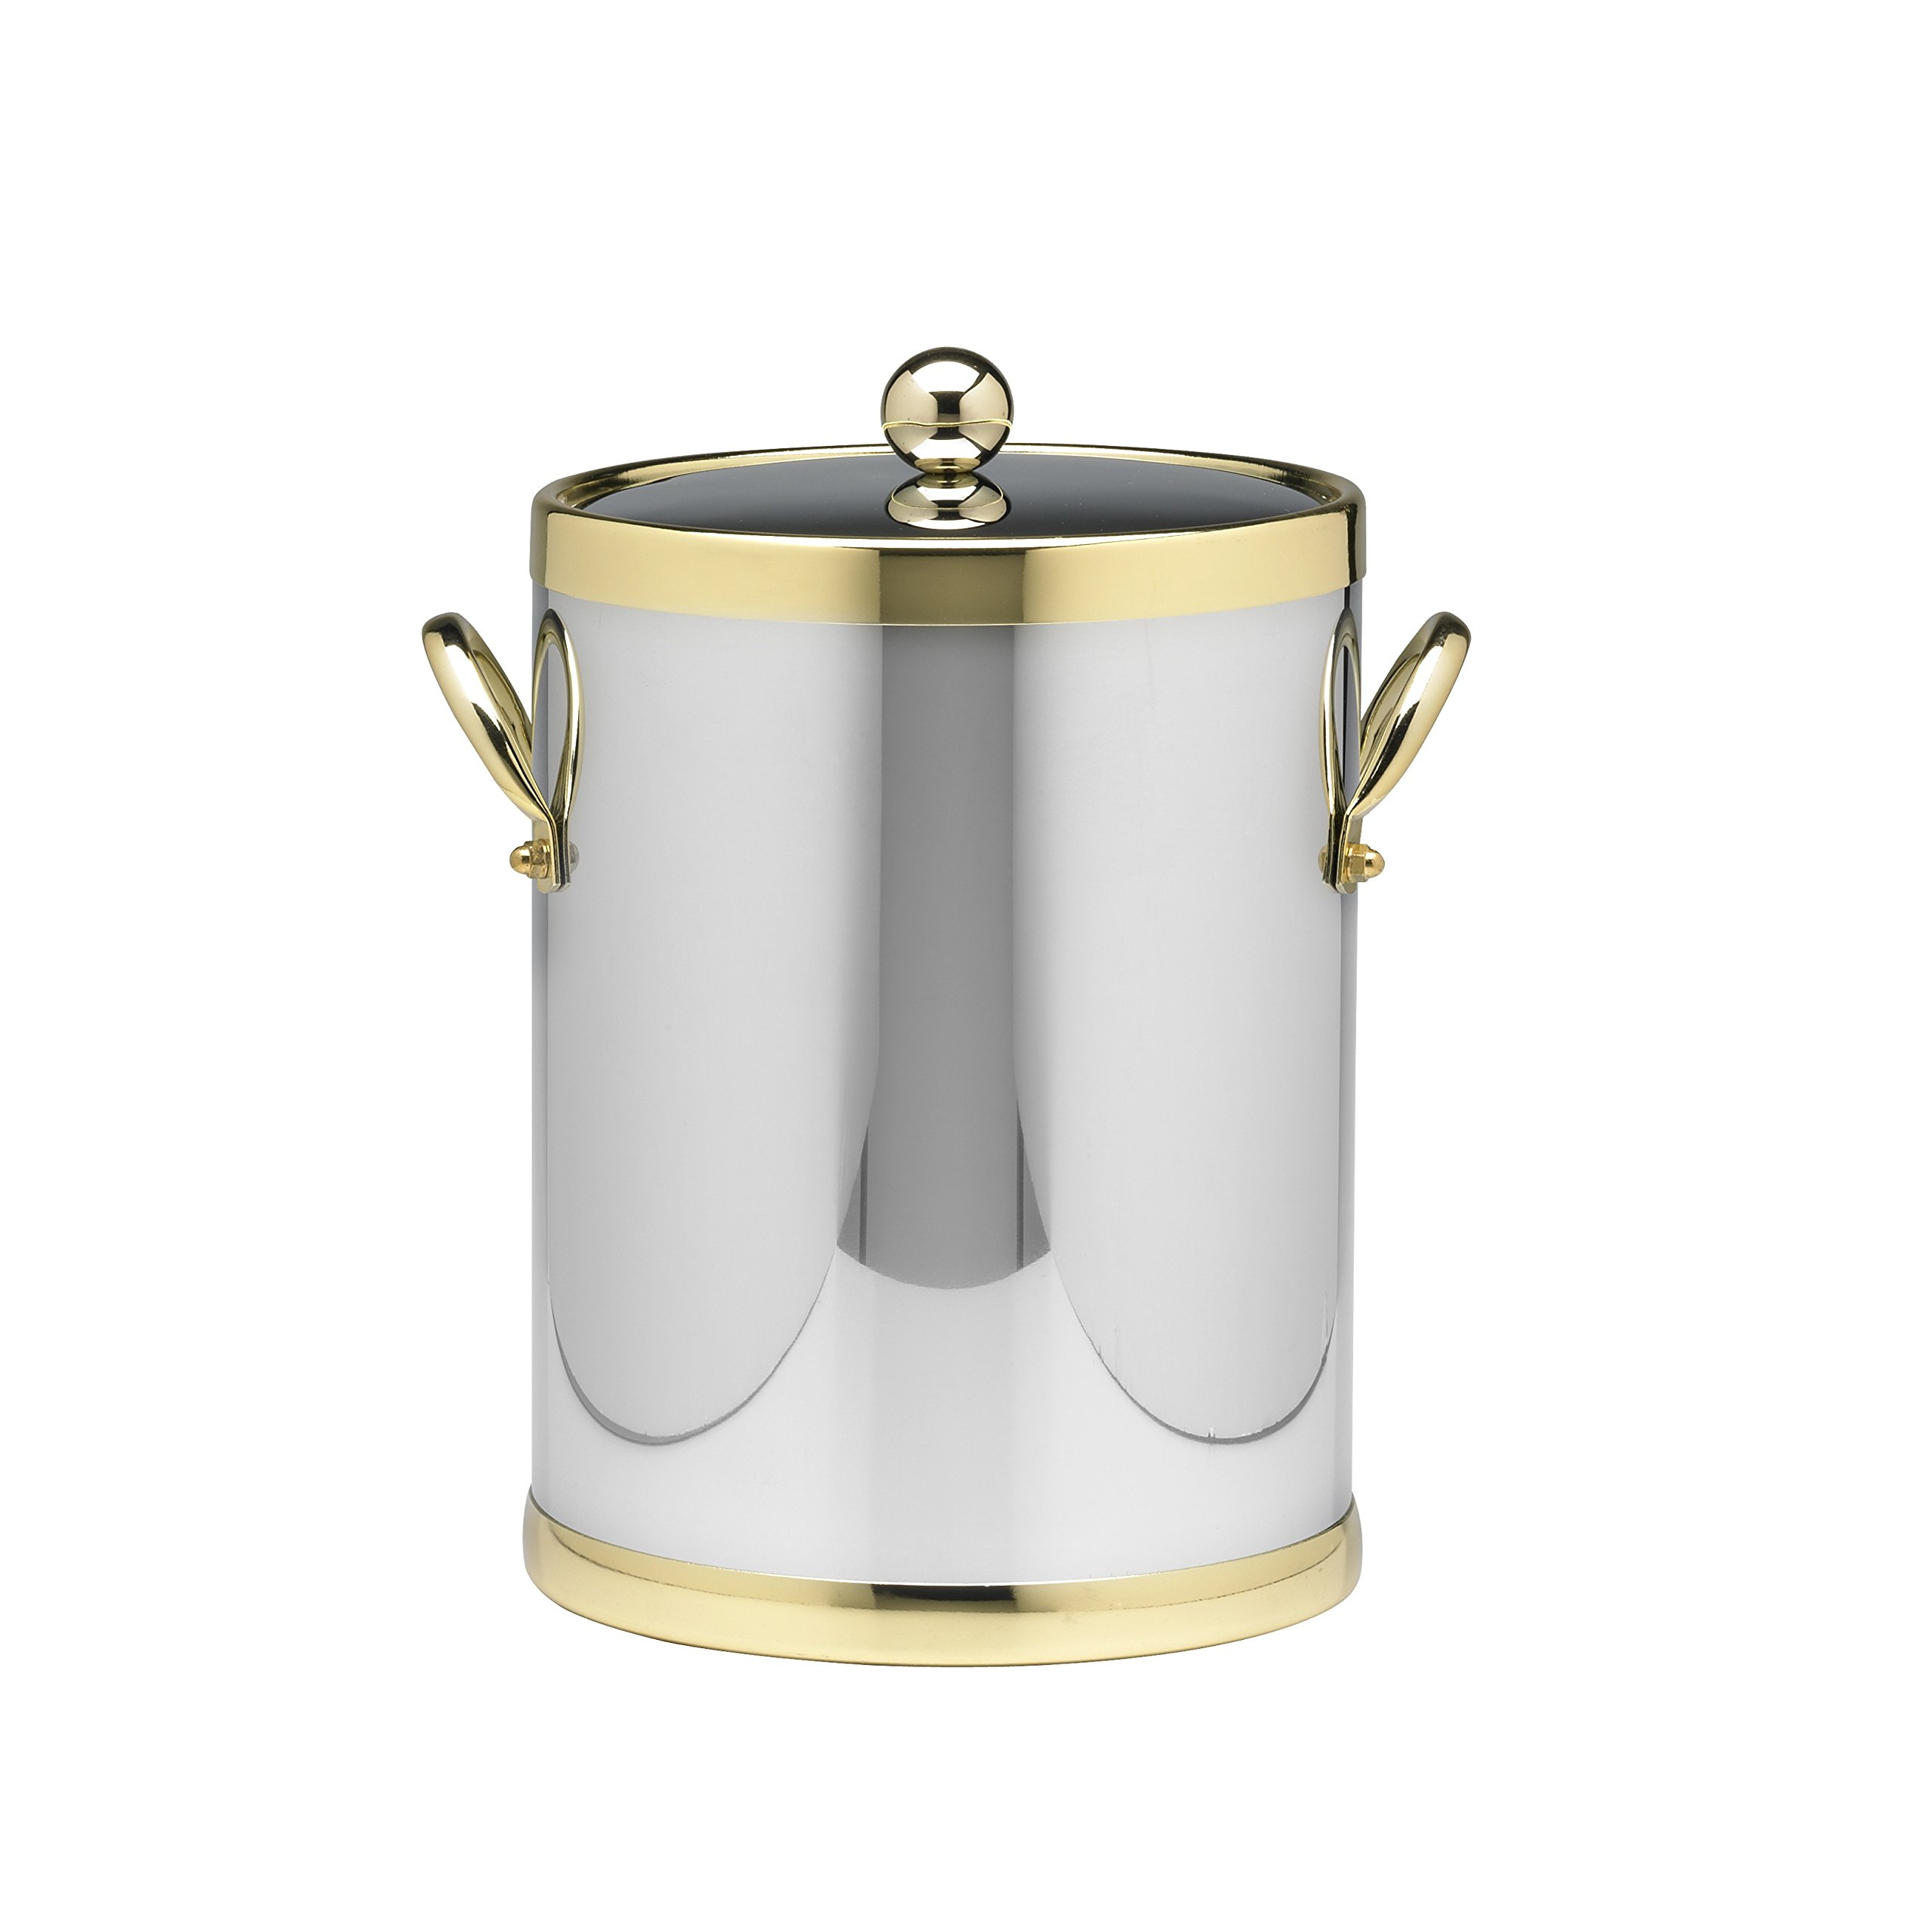 Kraftware Grant Signature Home Polished Chrome and Brass Ice Bucket, 5 quart, Silver